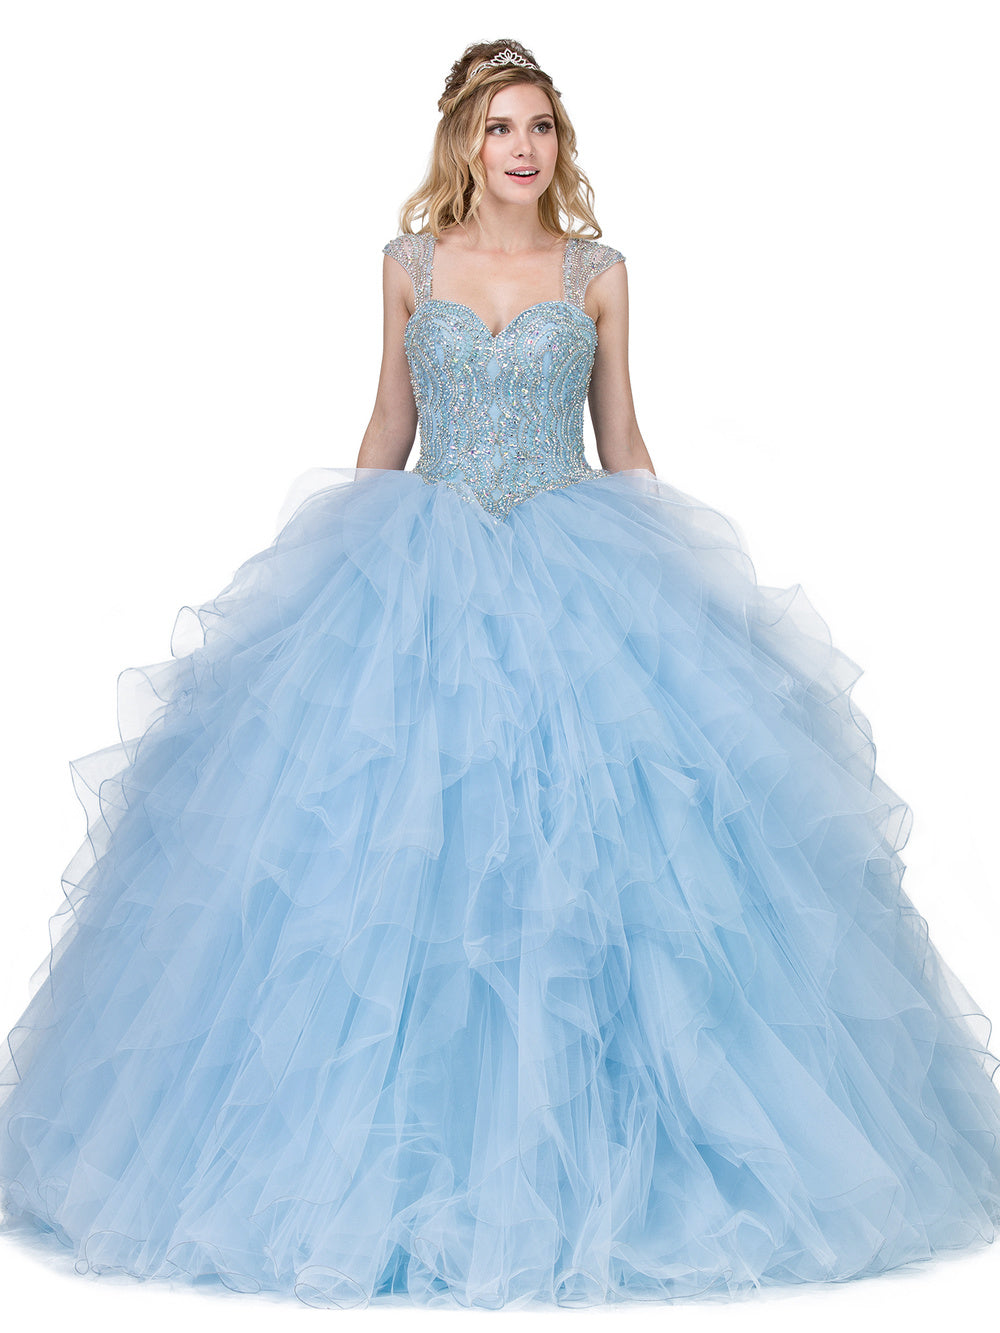 Dress2018 QUINCEANERA DQ1272